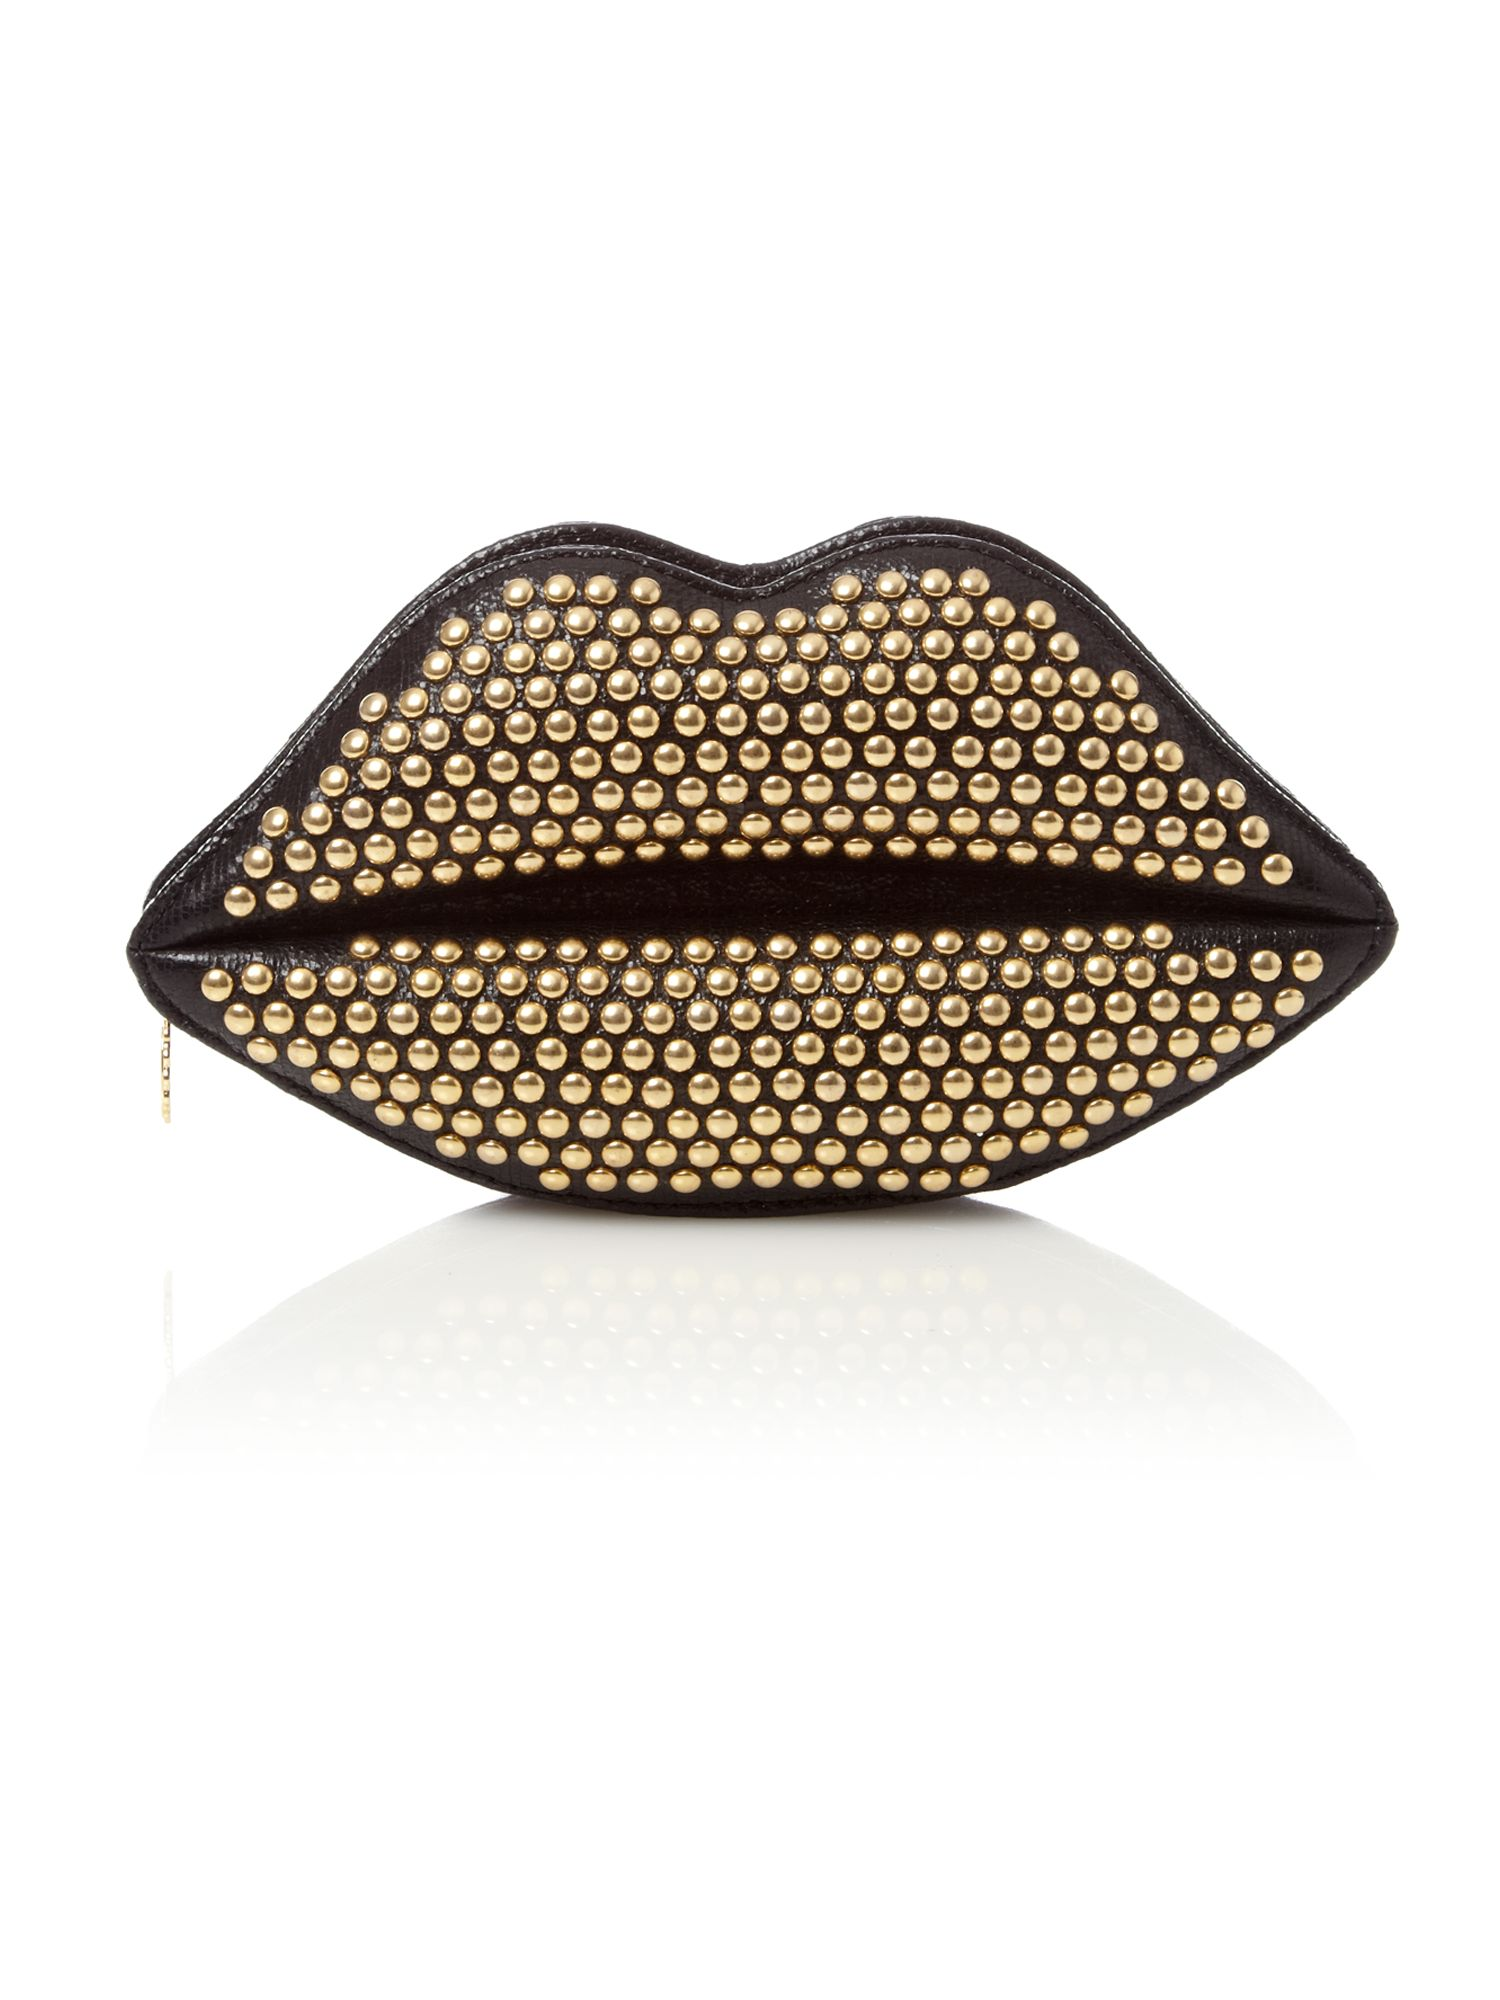 Lulu Guinness Clutch Bag